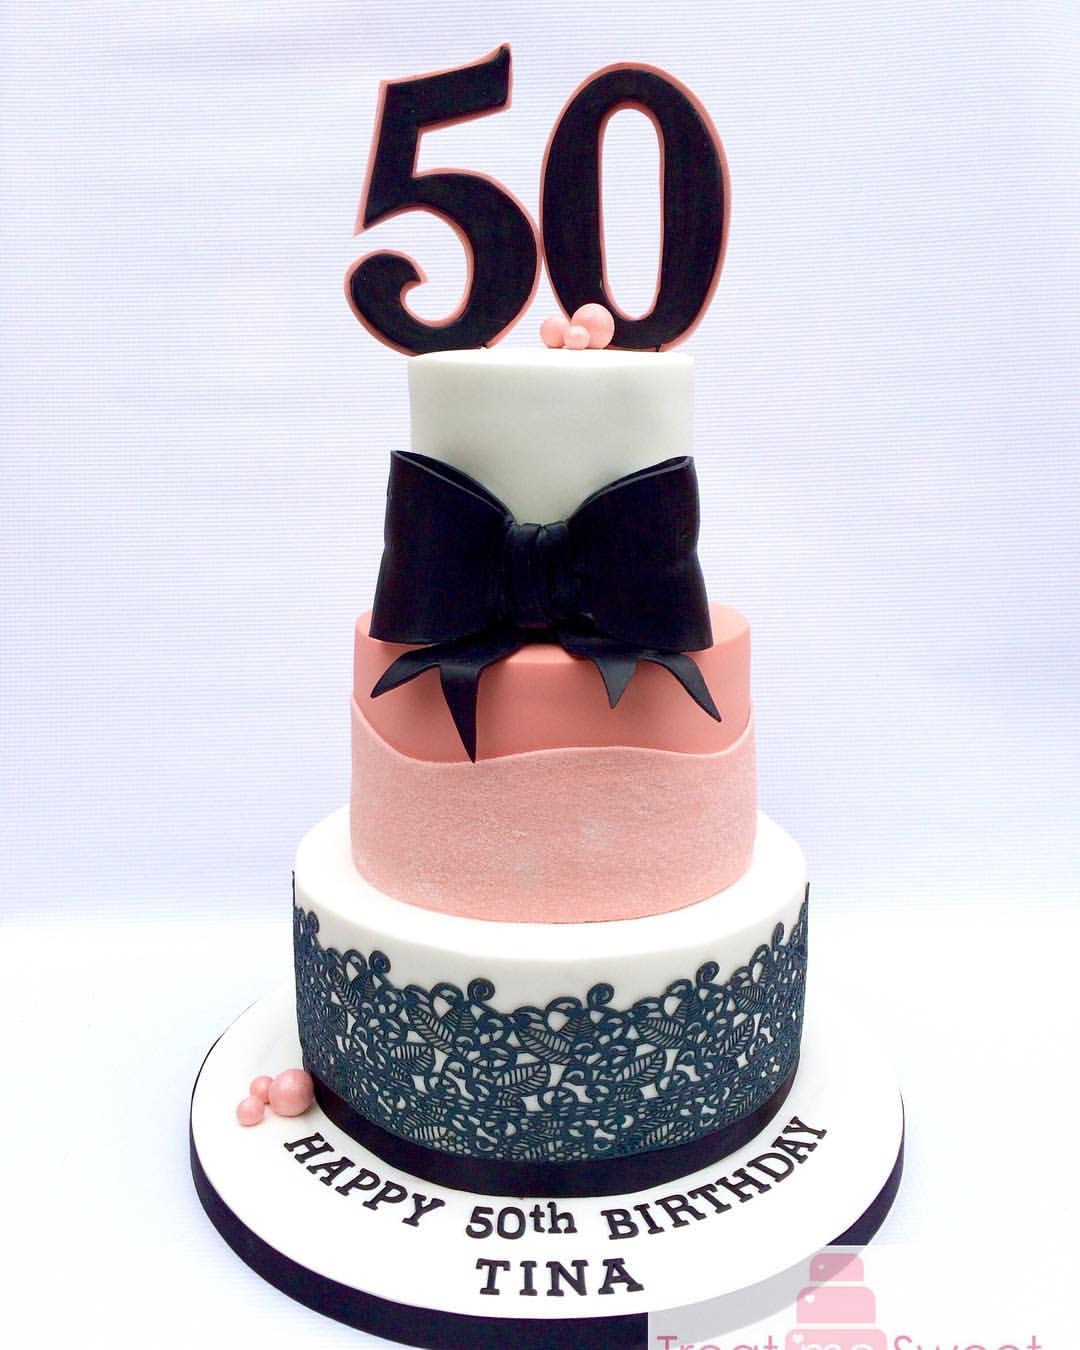 Tiered Pink, white and black cake with large bow and edible lace - Treat me Sweet